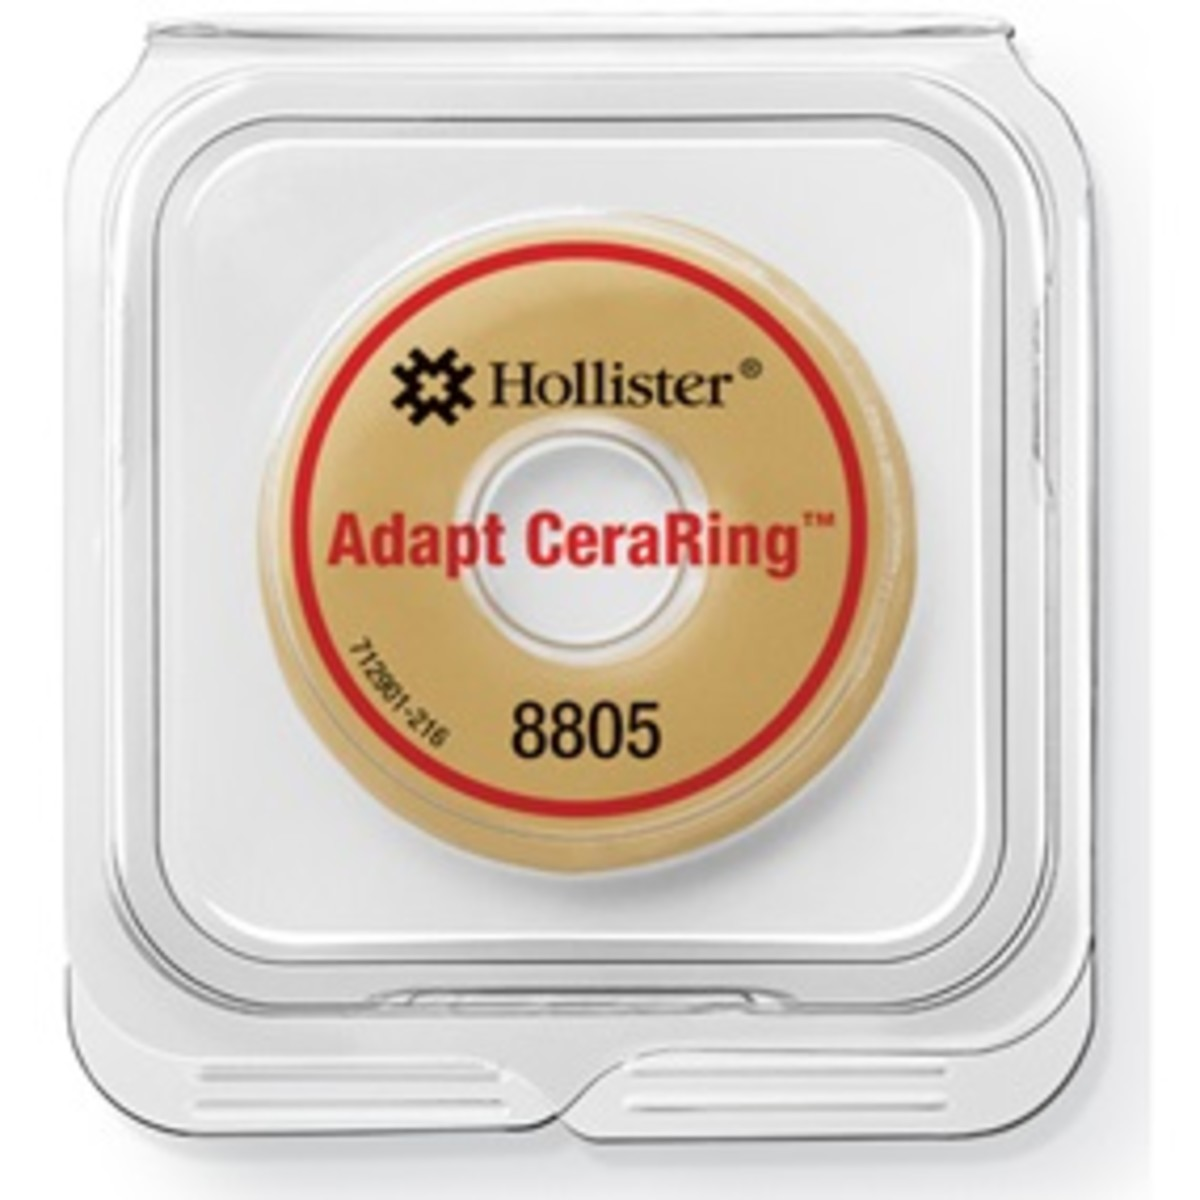 Use Adapt CeraRing™ barrier rings with Hollister one-piece and two-piece pouching systems.